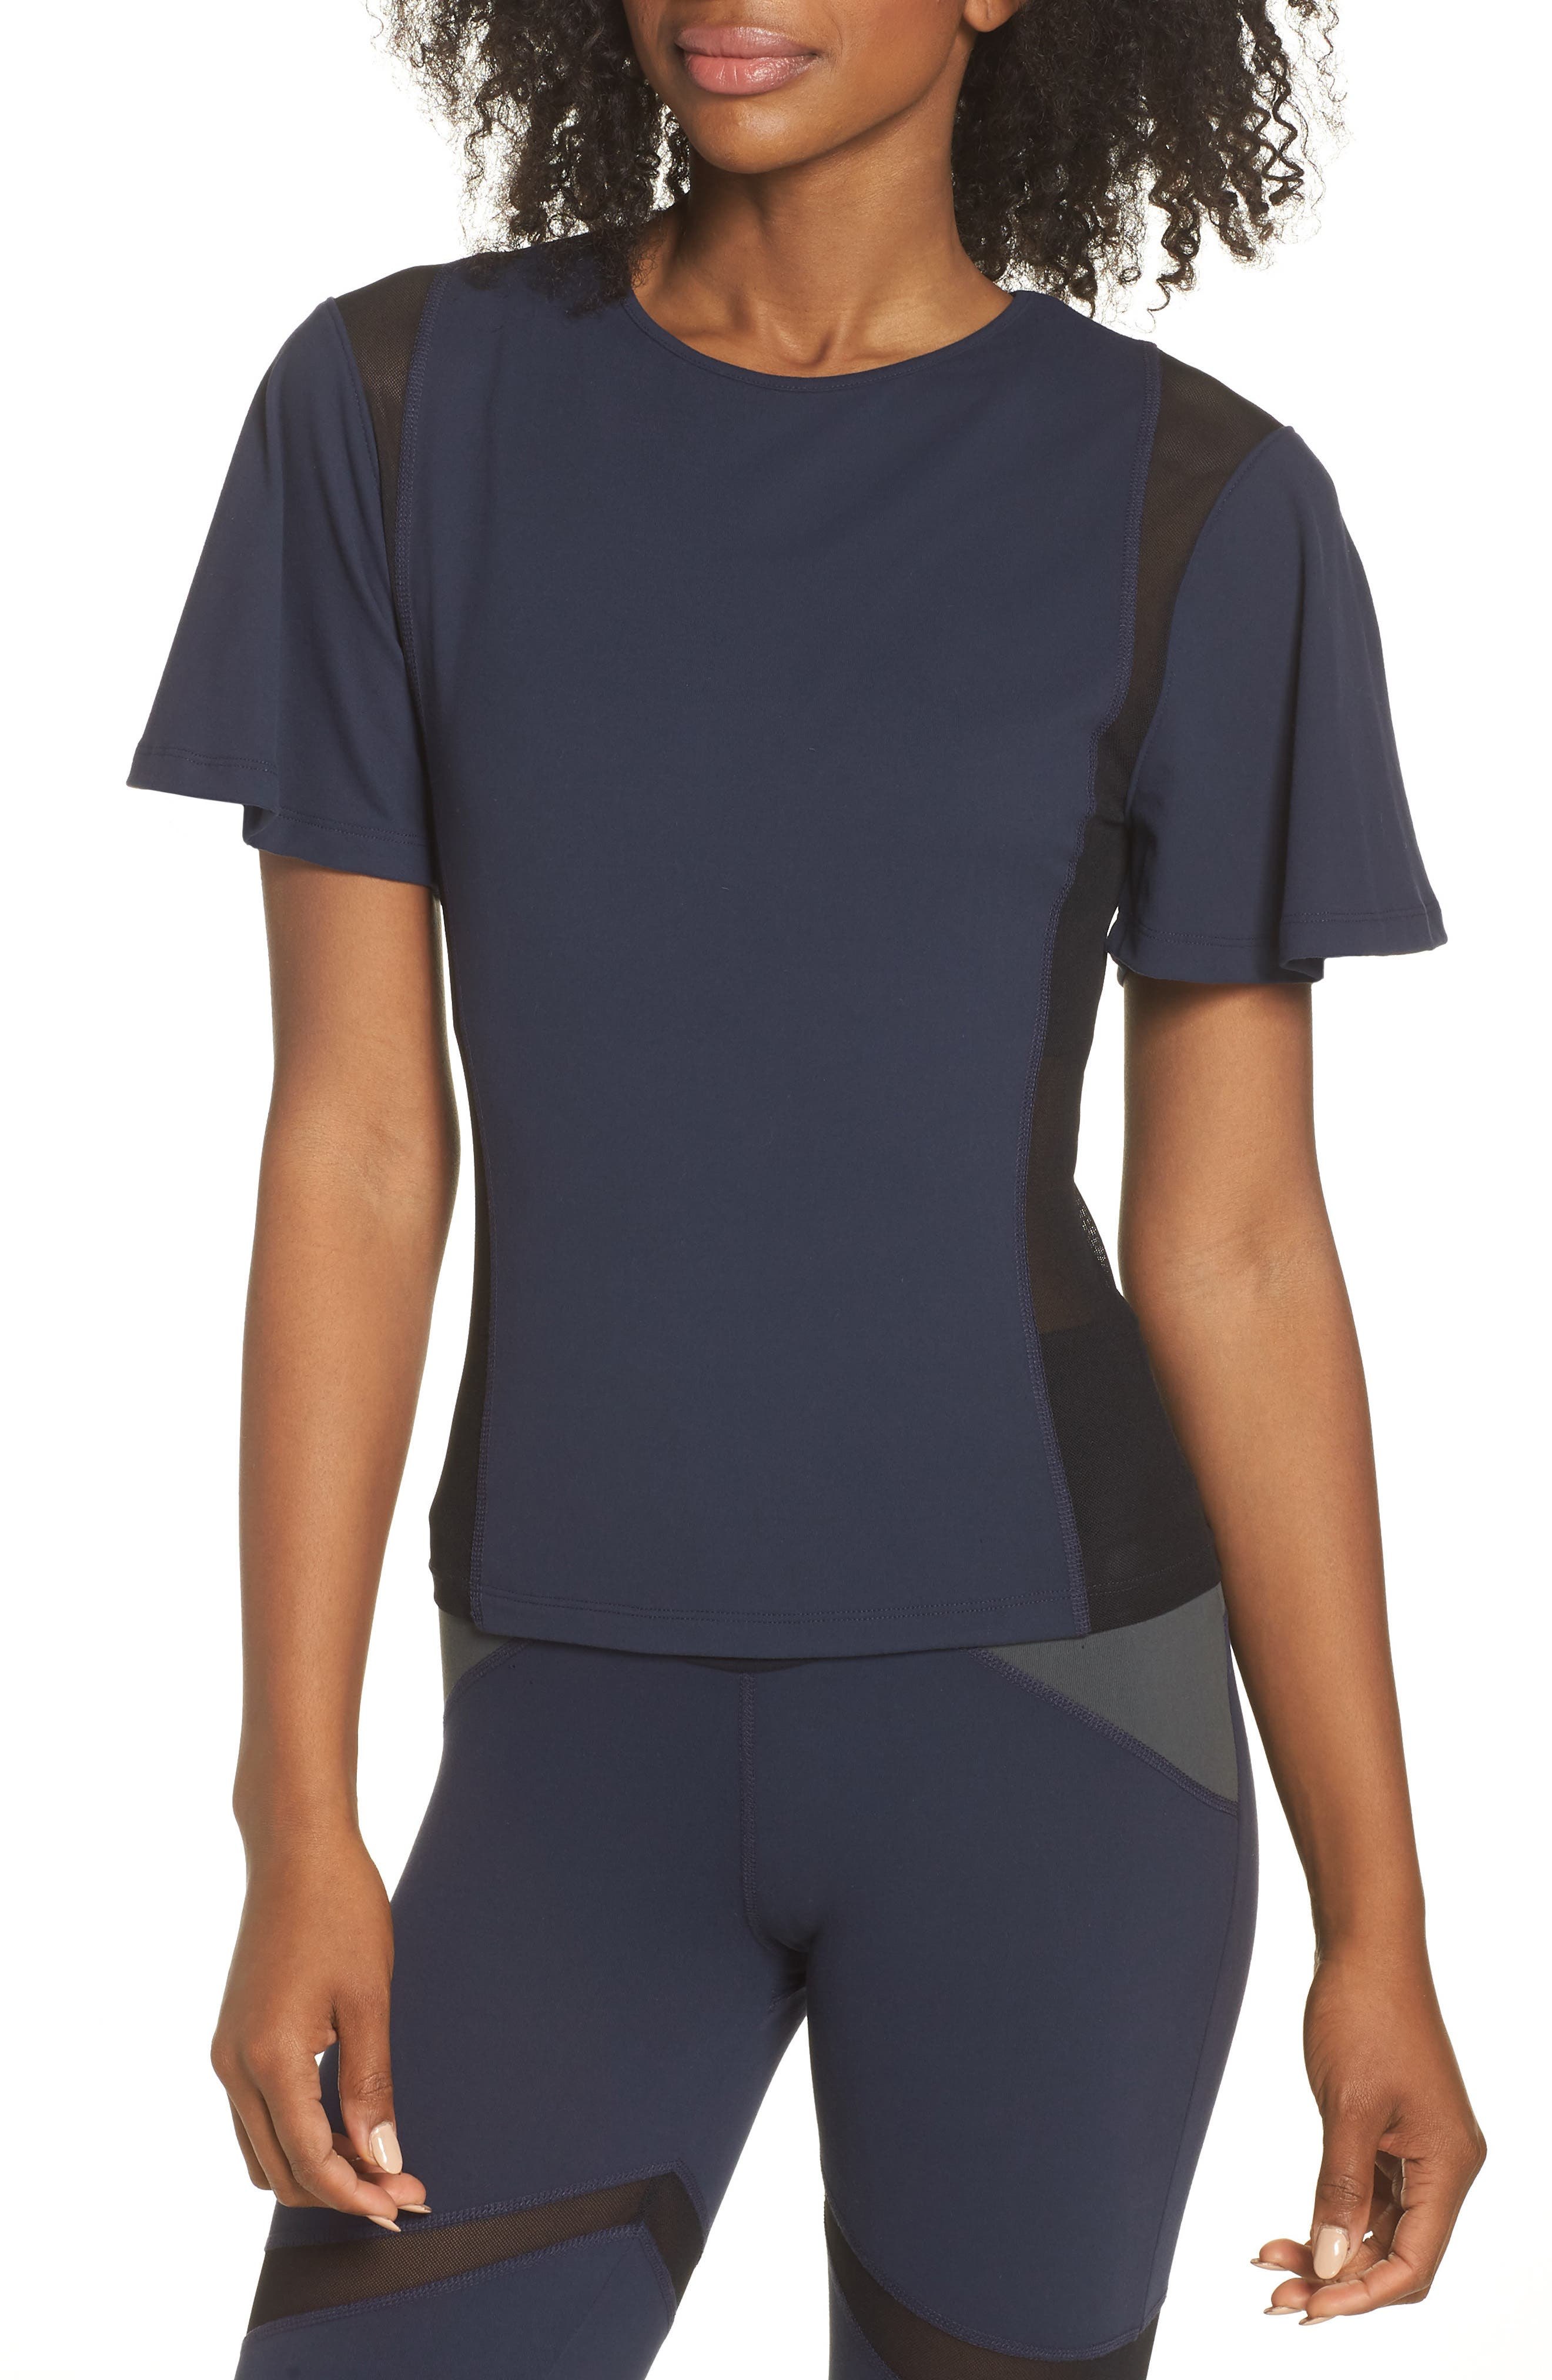 BoomBoom Athletica Wing Sleeve Tee,                             Main thumbnail 1, color,                             Navy/ Black